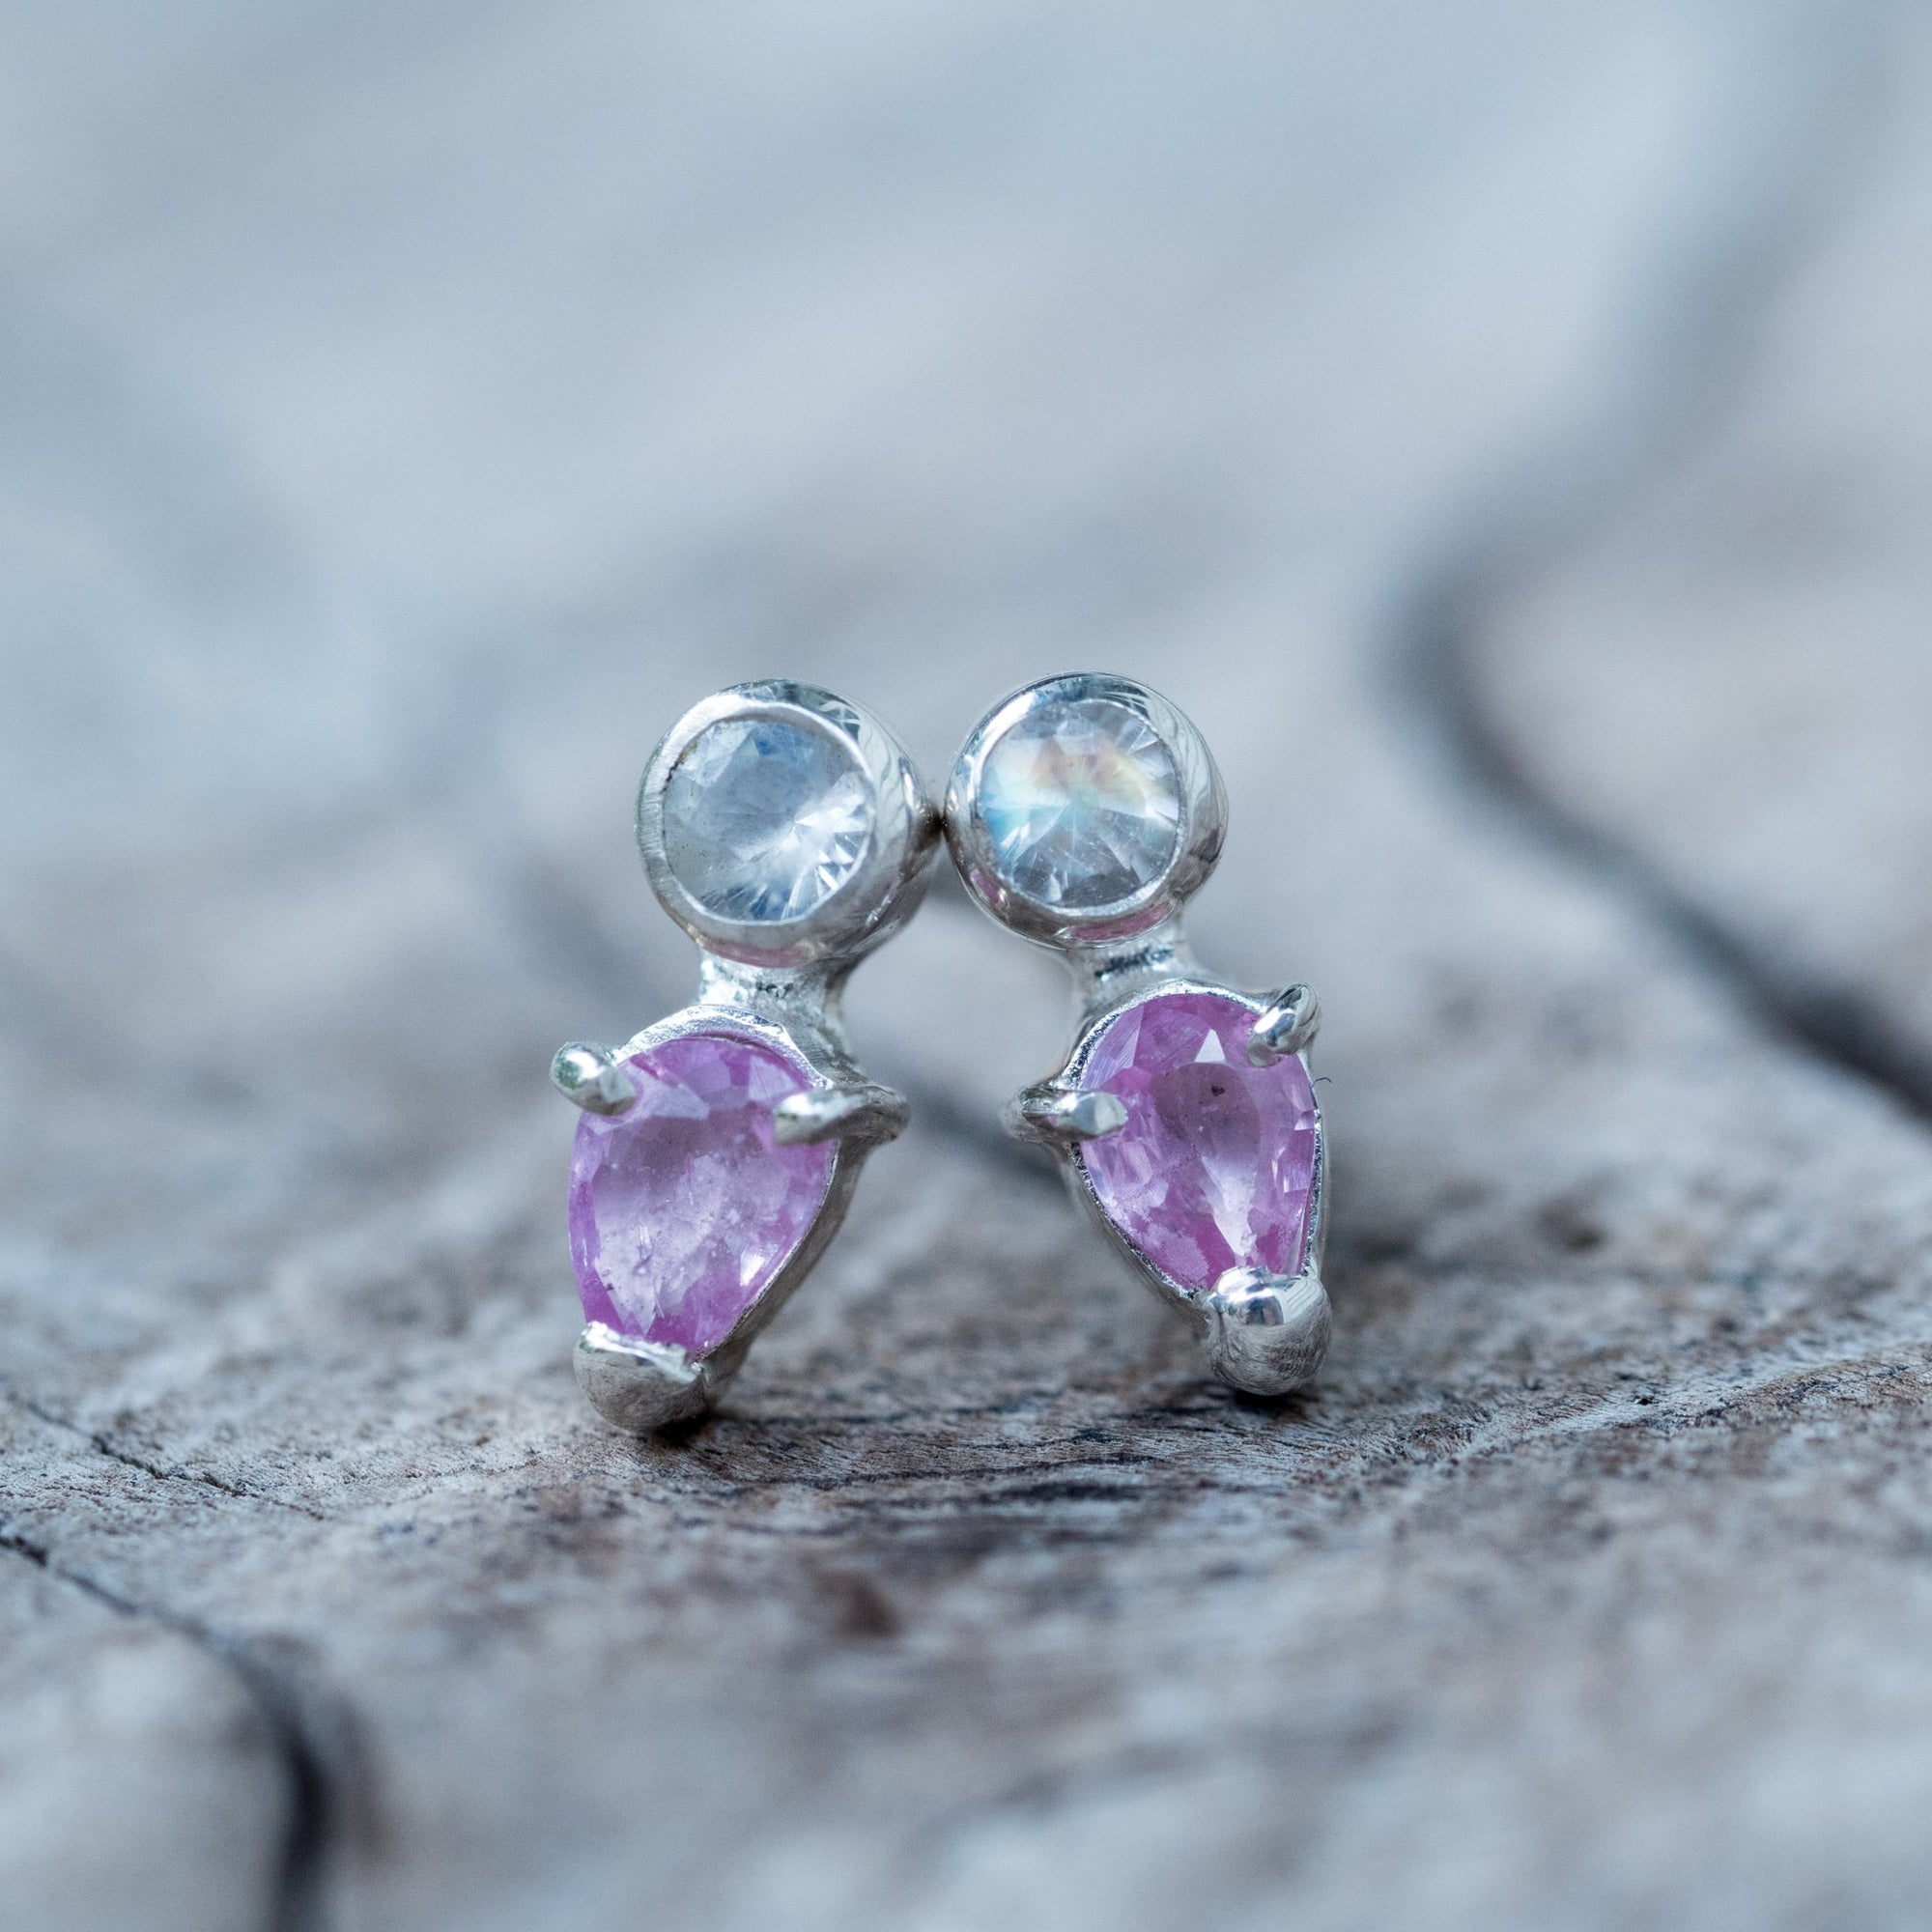 Pink Sapphire and Moonstone Earrings